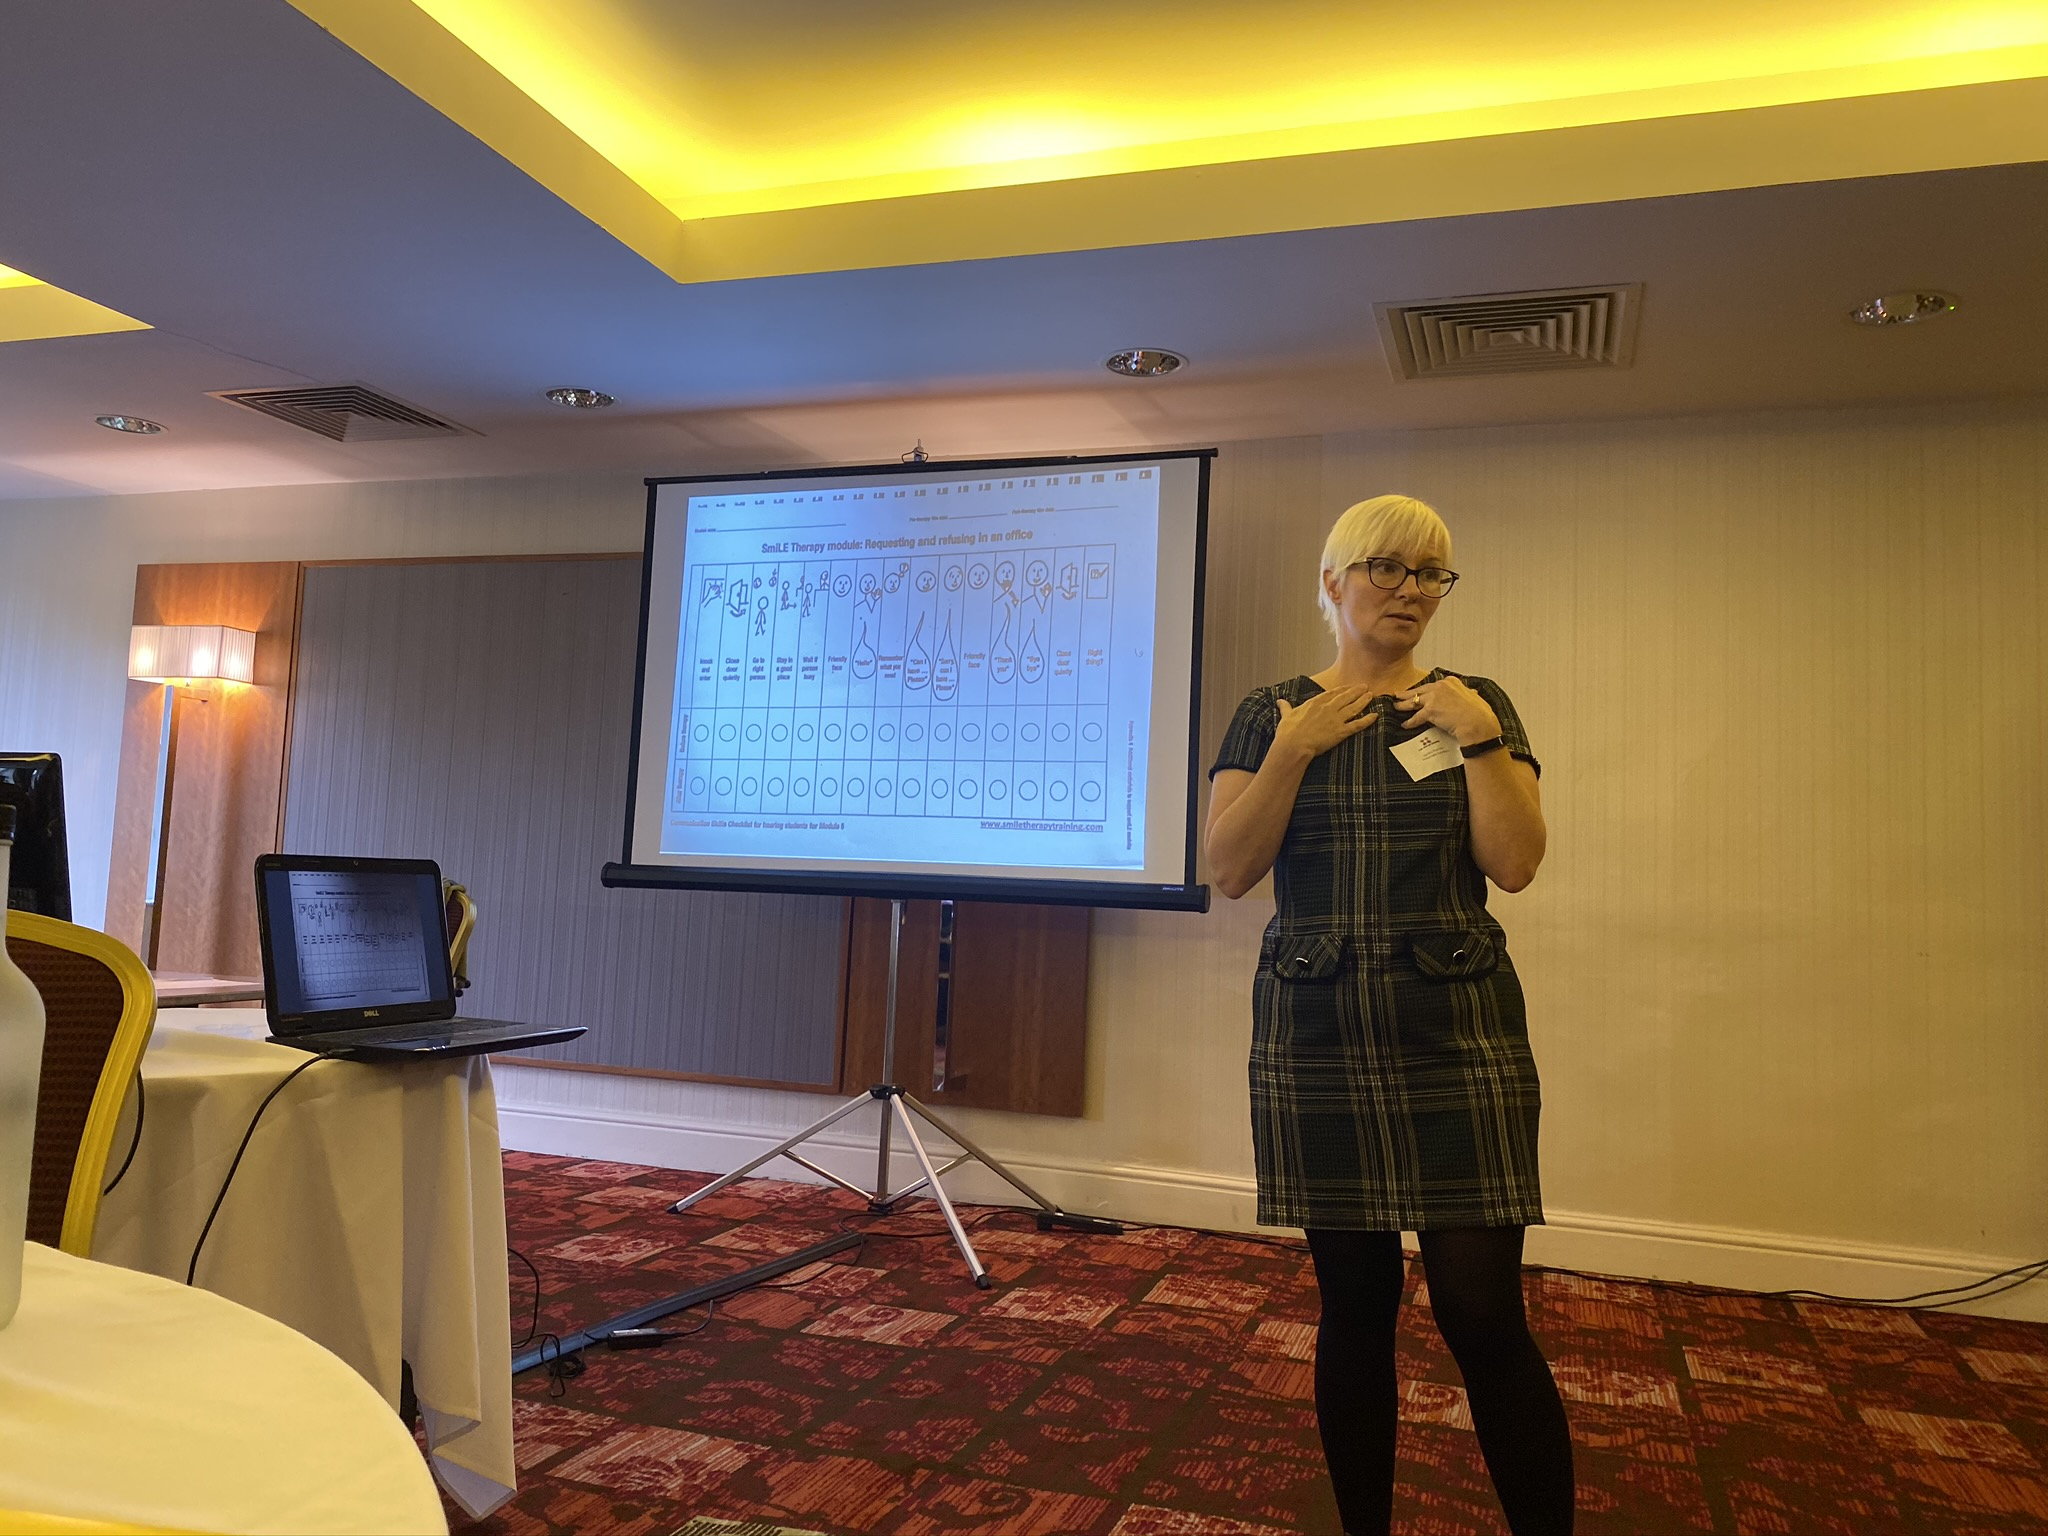 DS – Nicola's conference 5